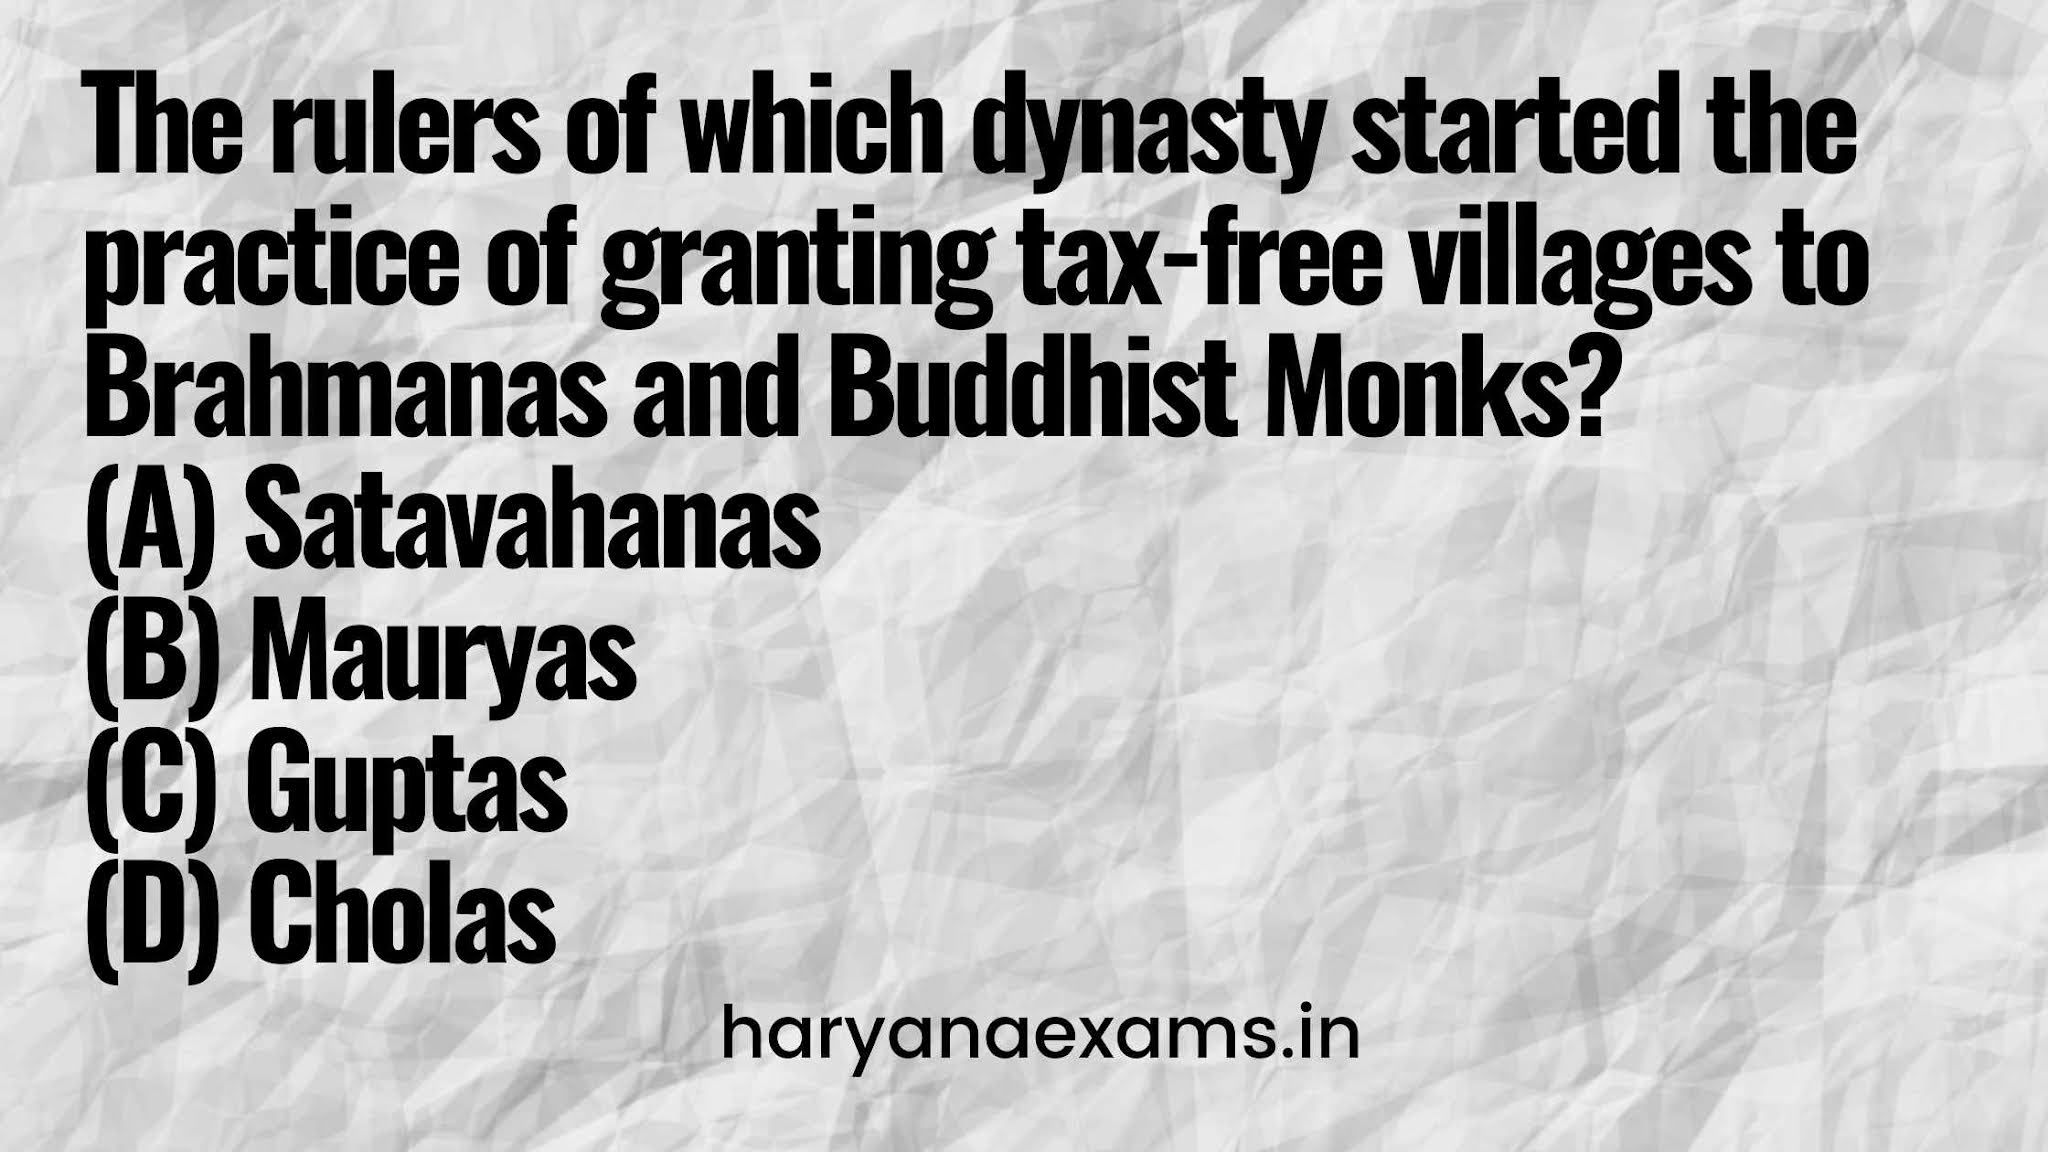 The rulers of which dynasty started the practice of granting tax-free villages to Brahmanas and Buddhist Monks?